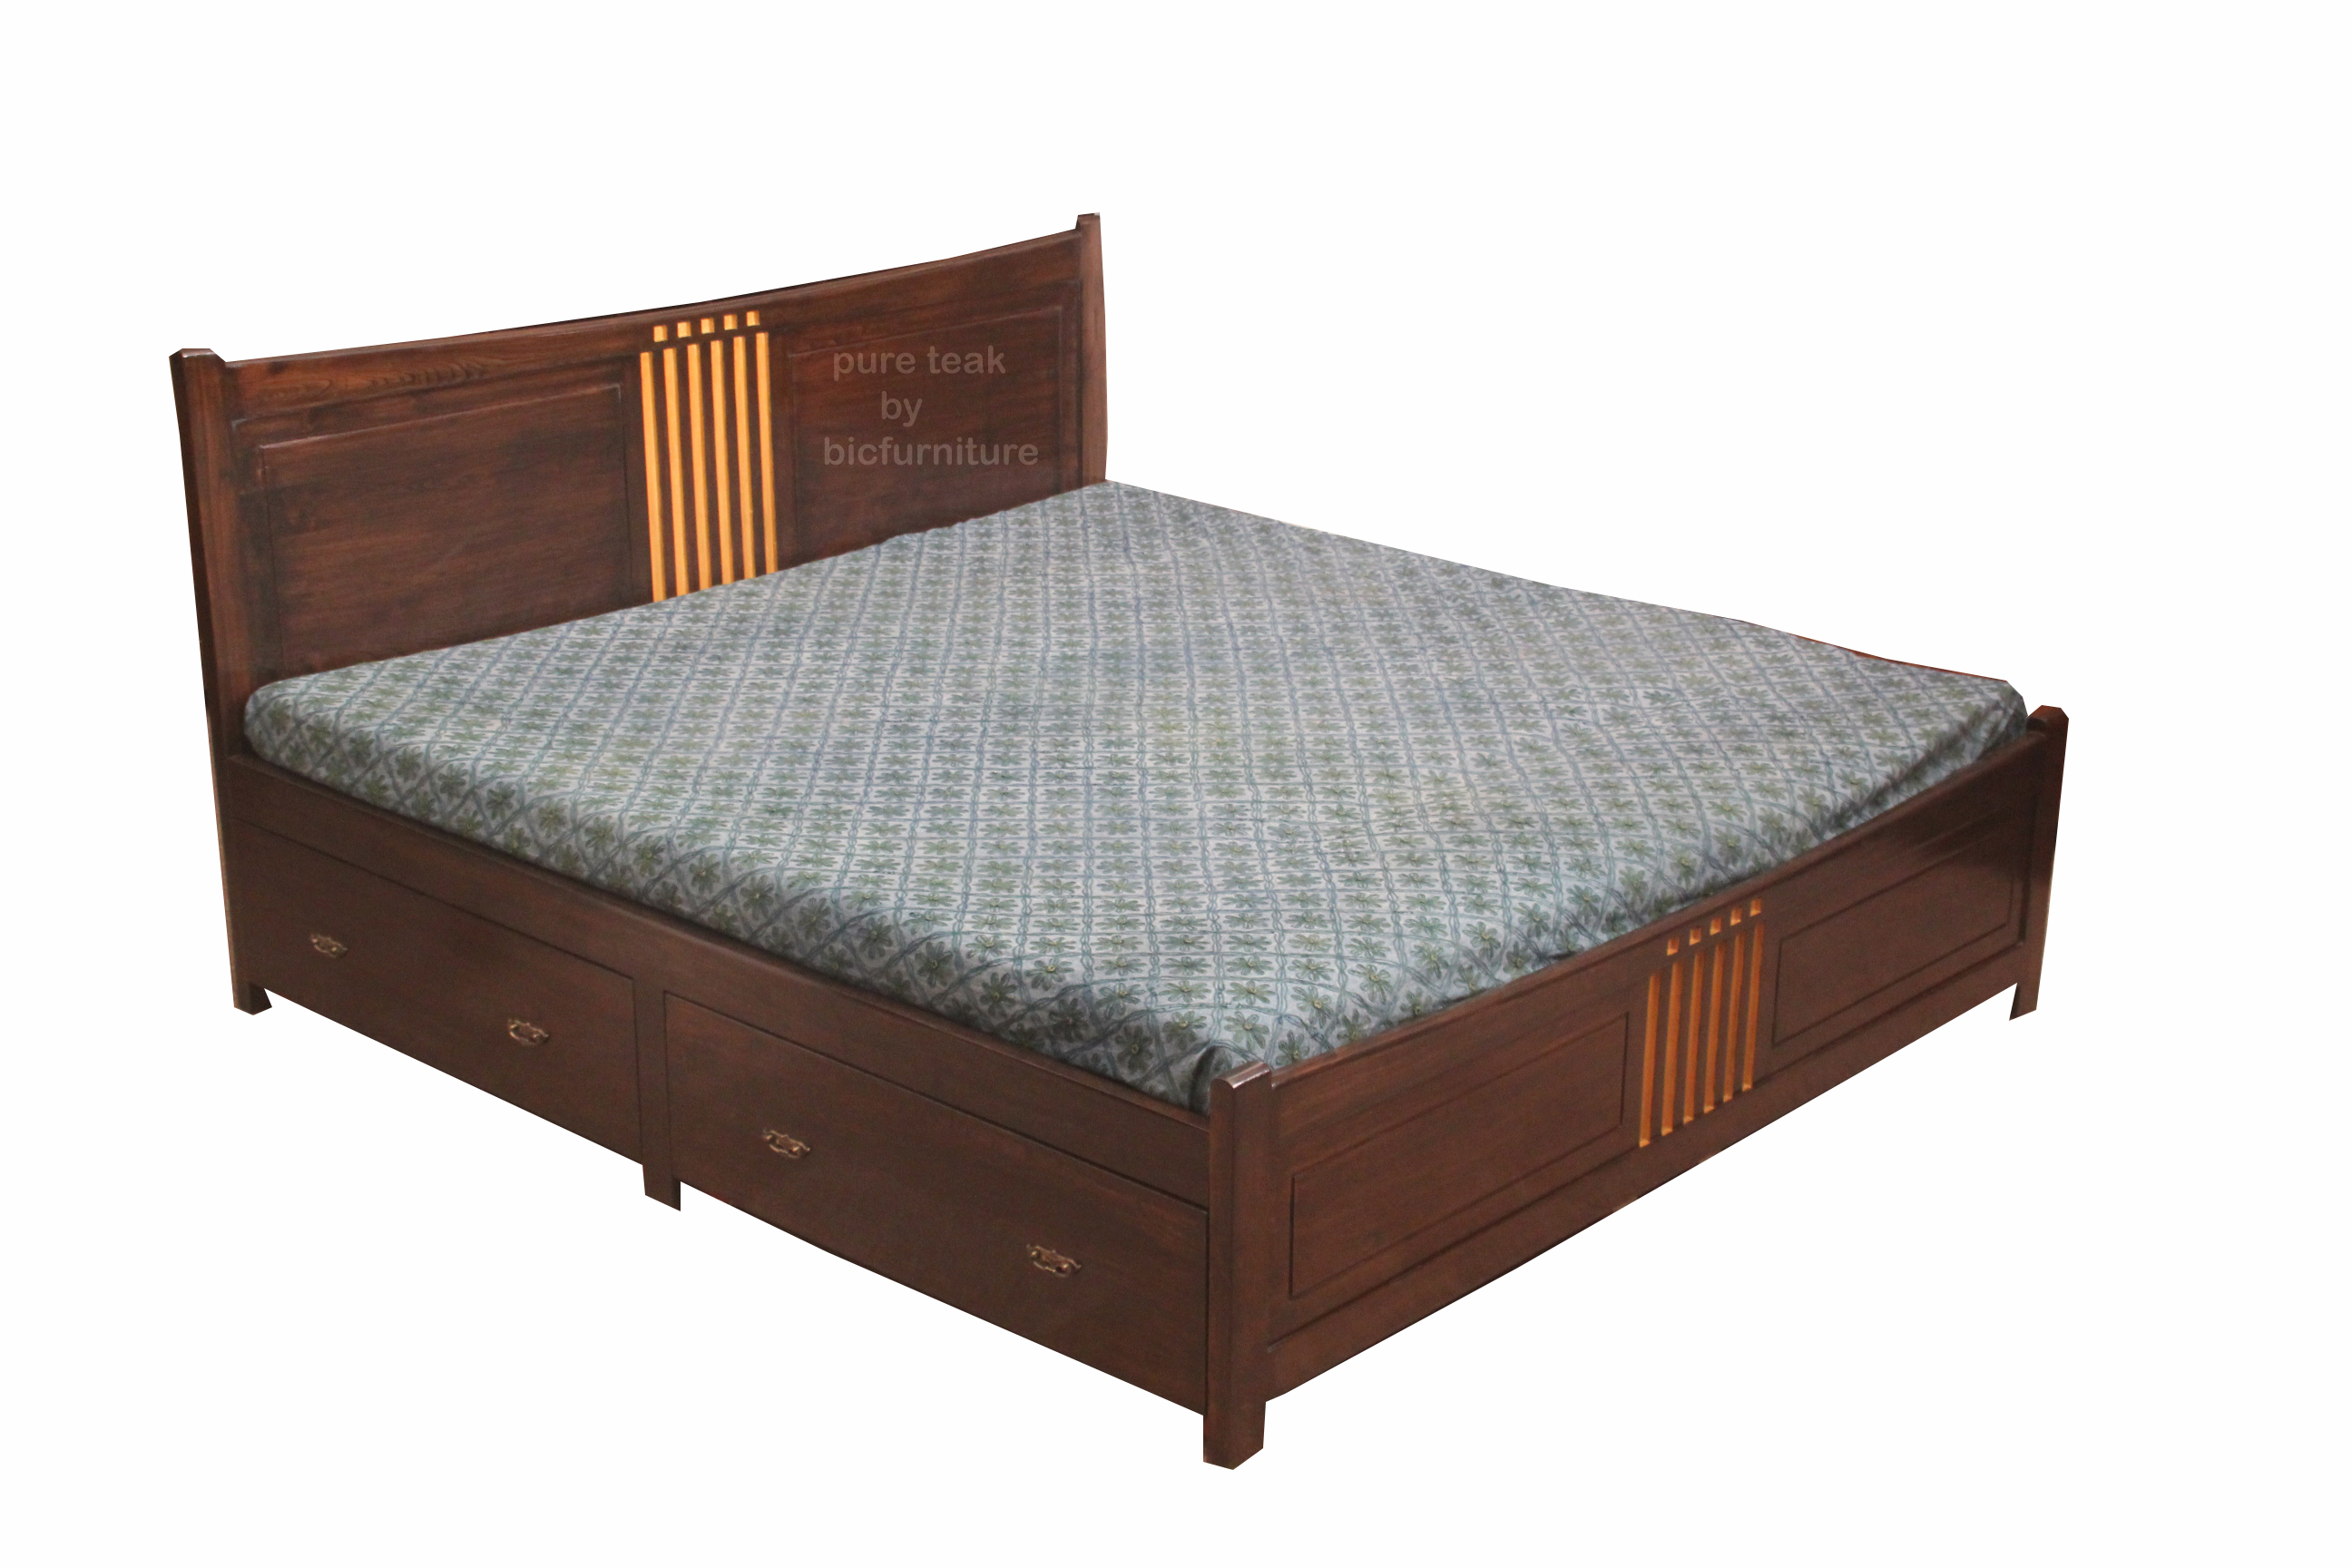 Toolcharts Important You Must Have Modern Wood King Size Teak Wood Bed Design